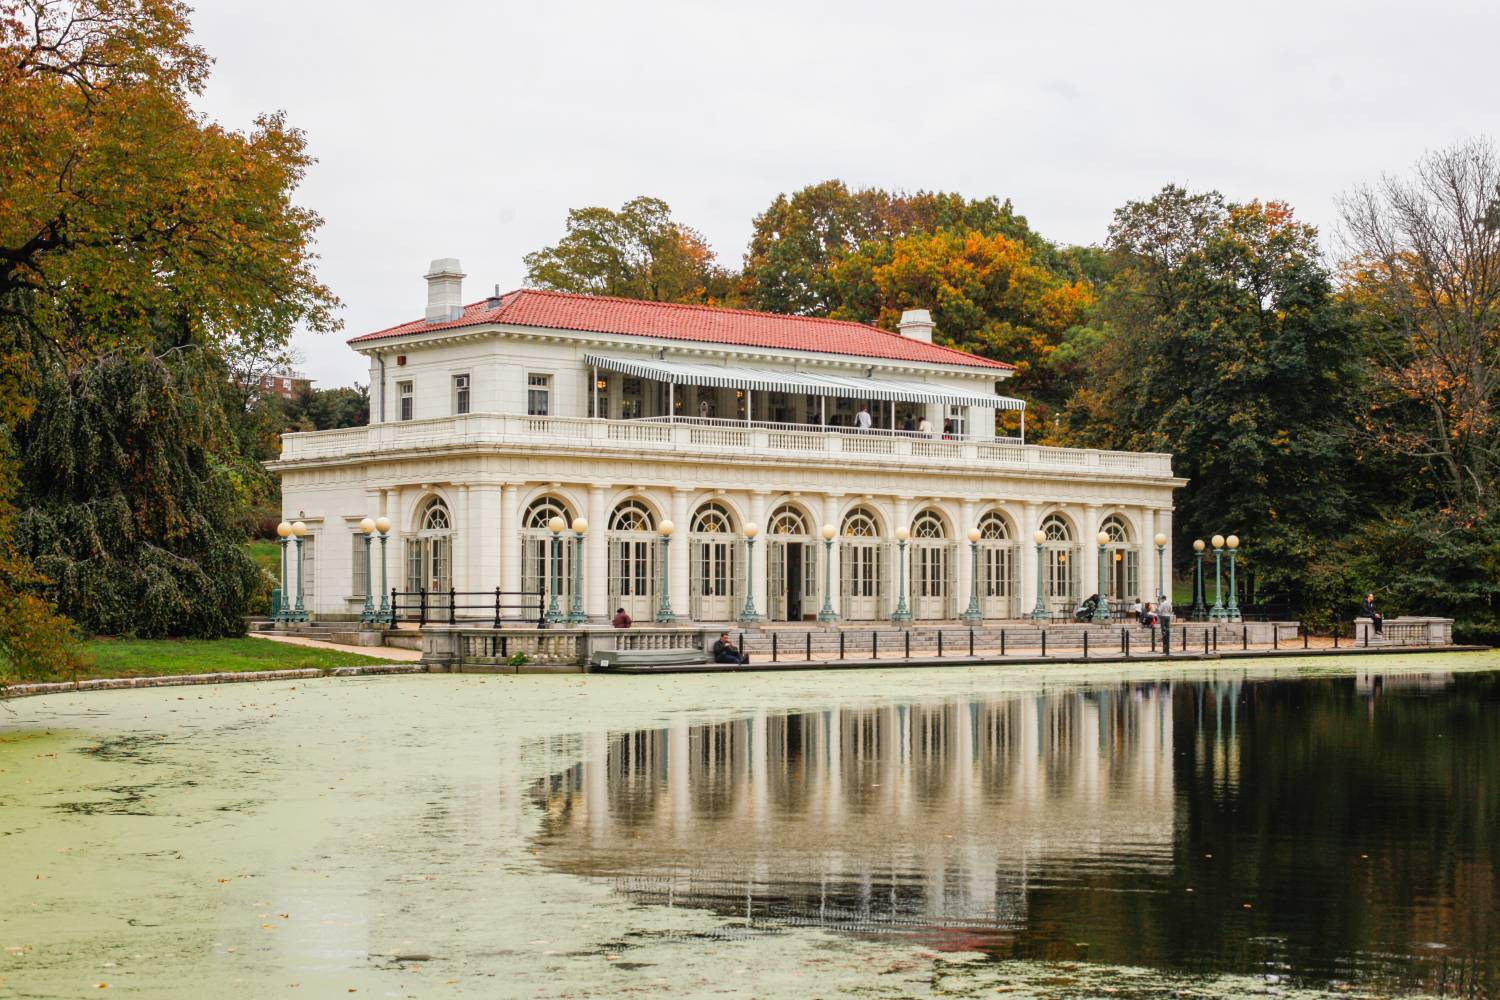 Queens Museum New York City, Prospect Park Audubon Center | The Official Guide to New York City